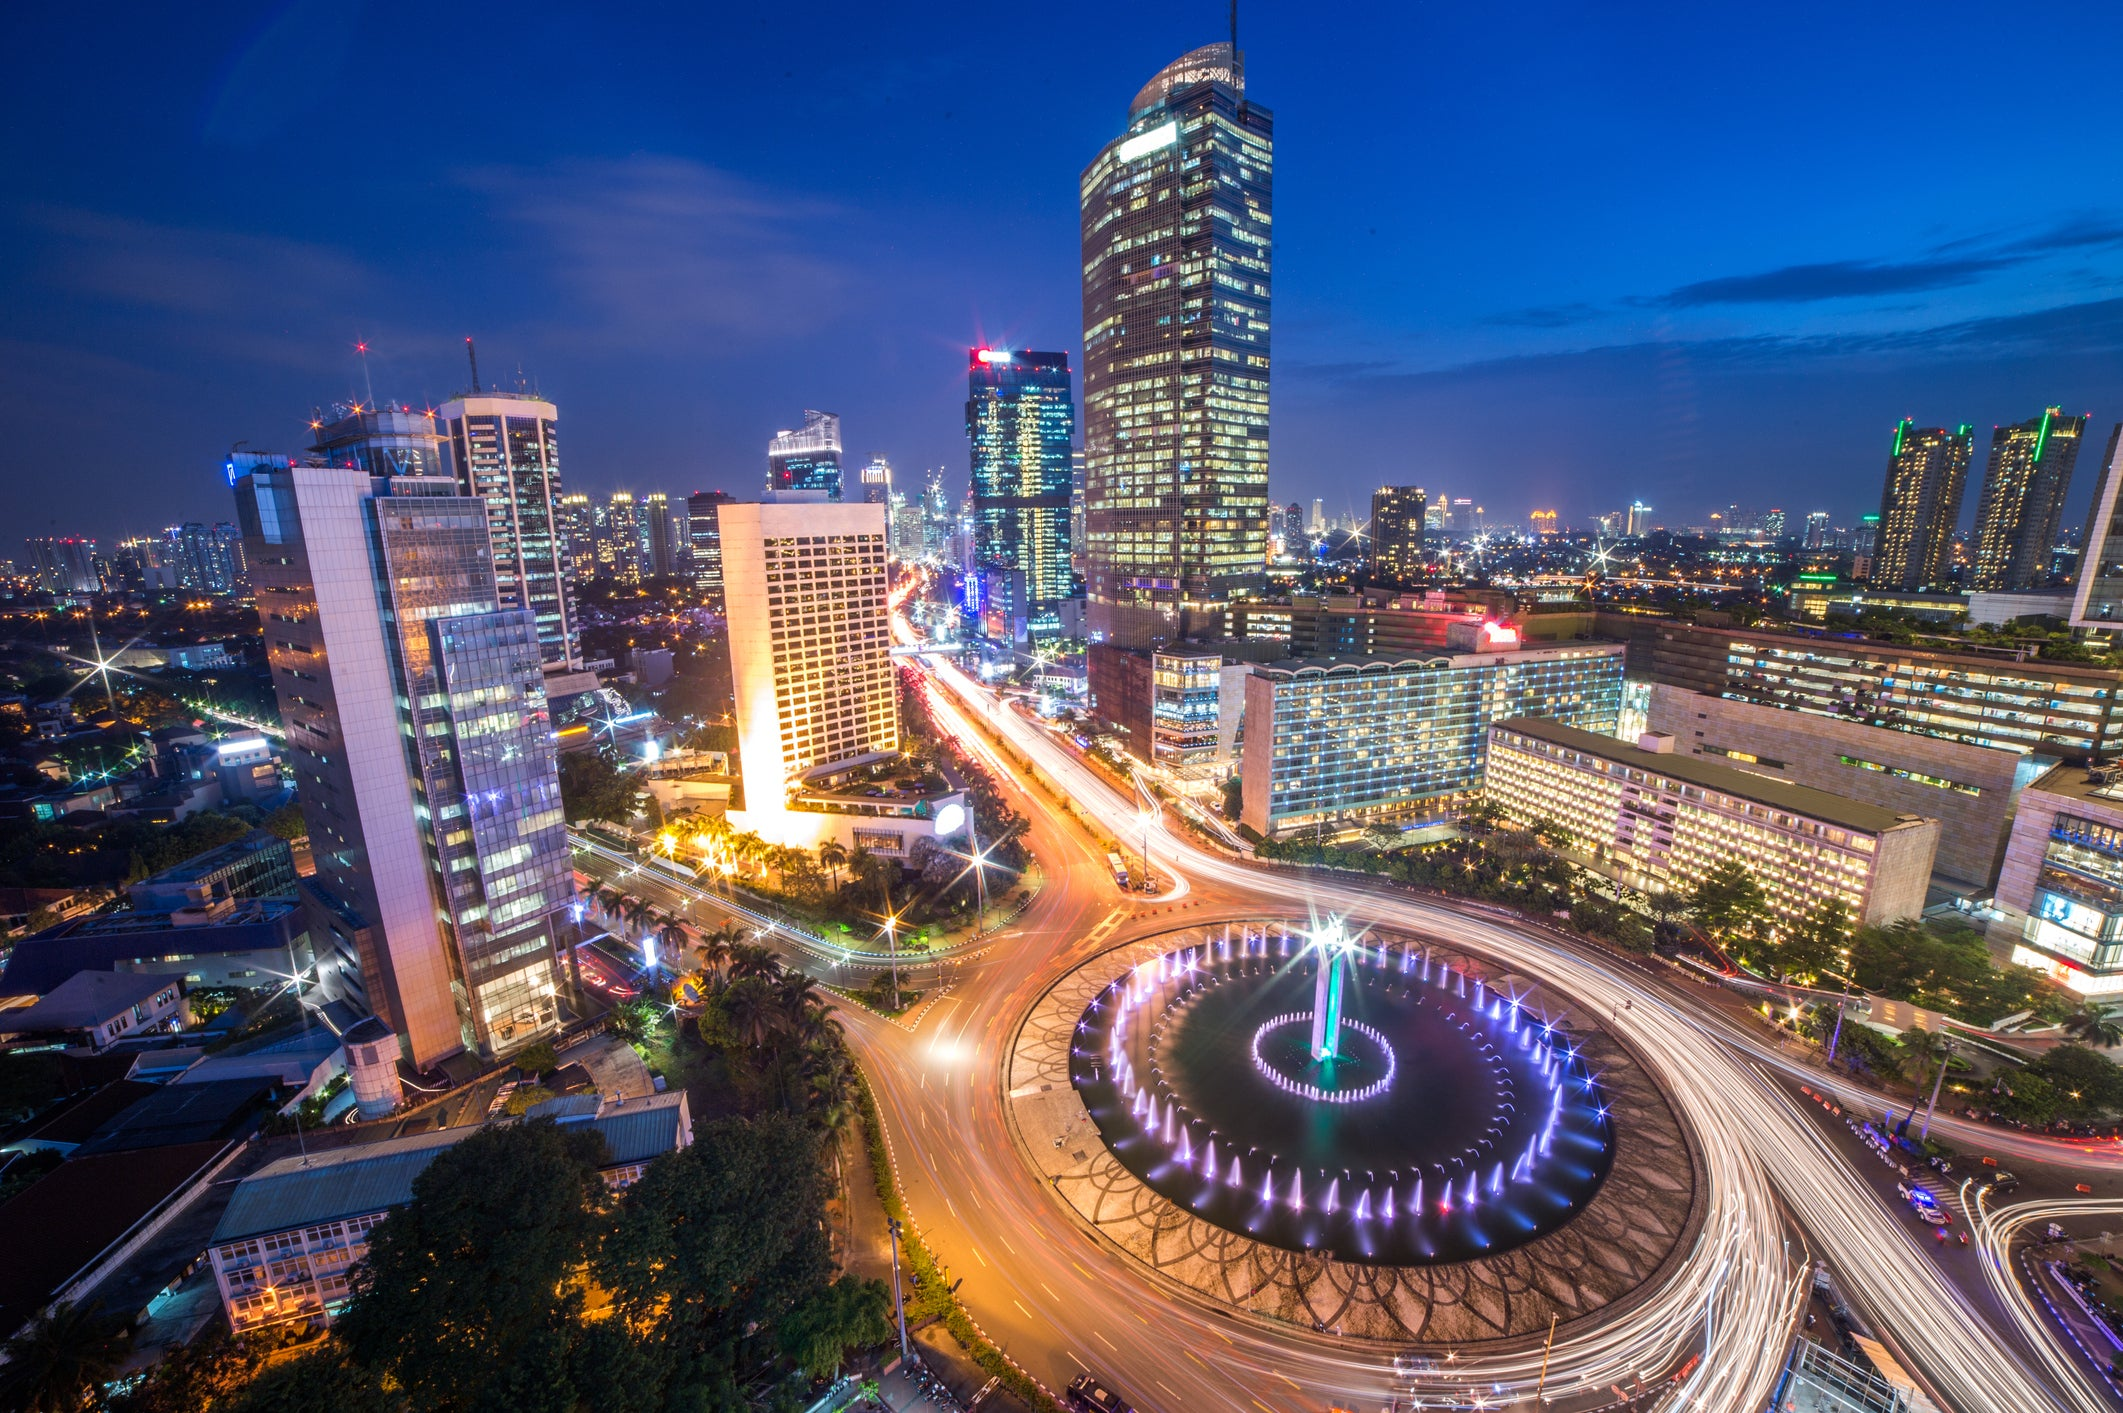 Pt Telekomunikasi Indonesia Is Pouring Billions Into Better Data Indihome Sky Top Up 3 Gb Services The Motley Fool